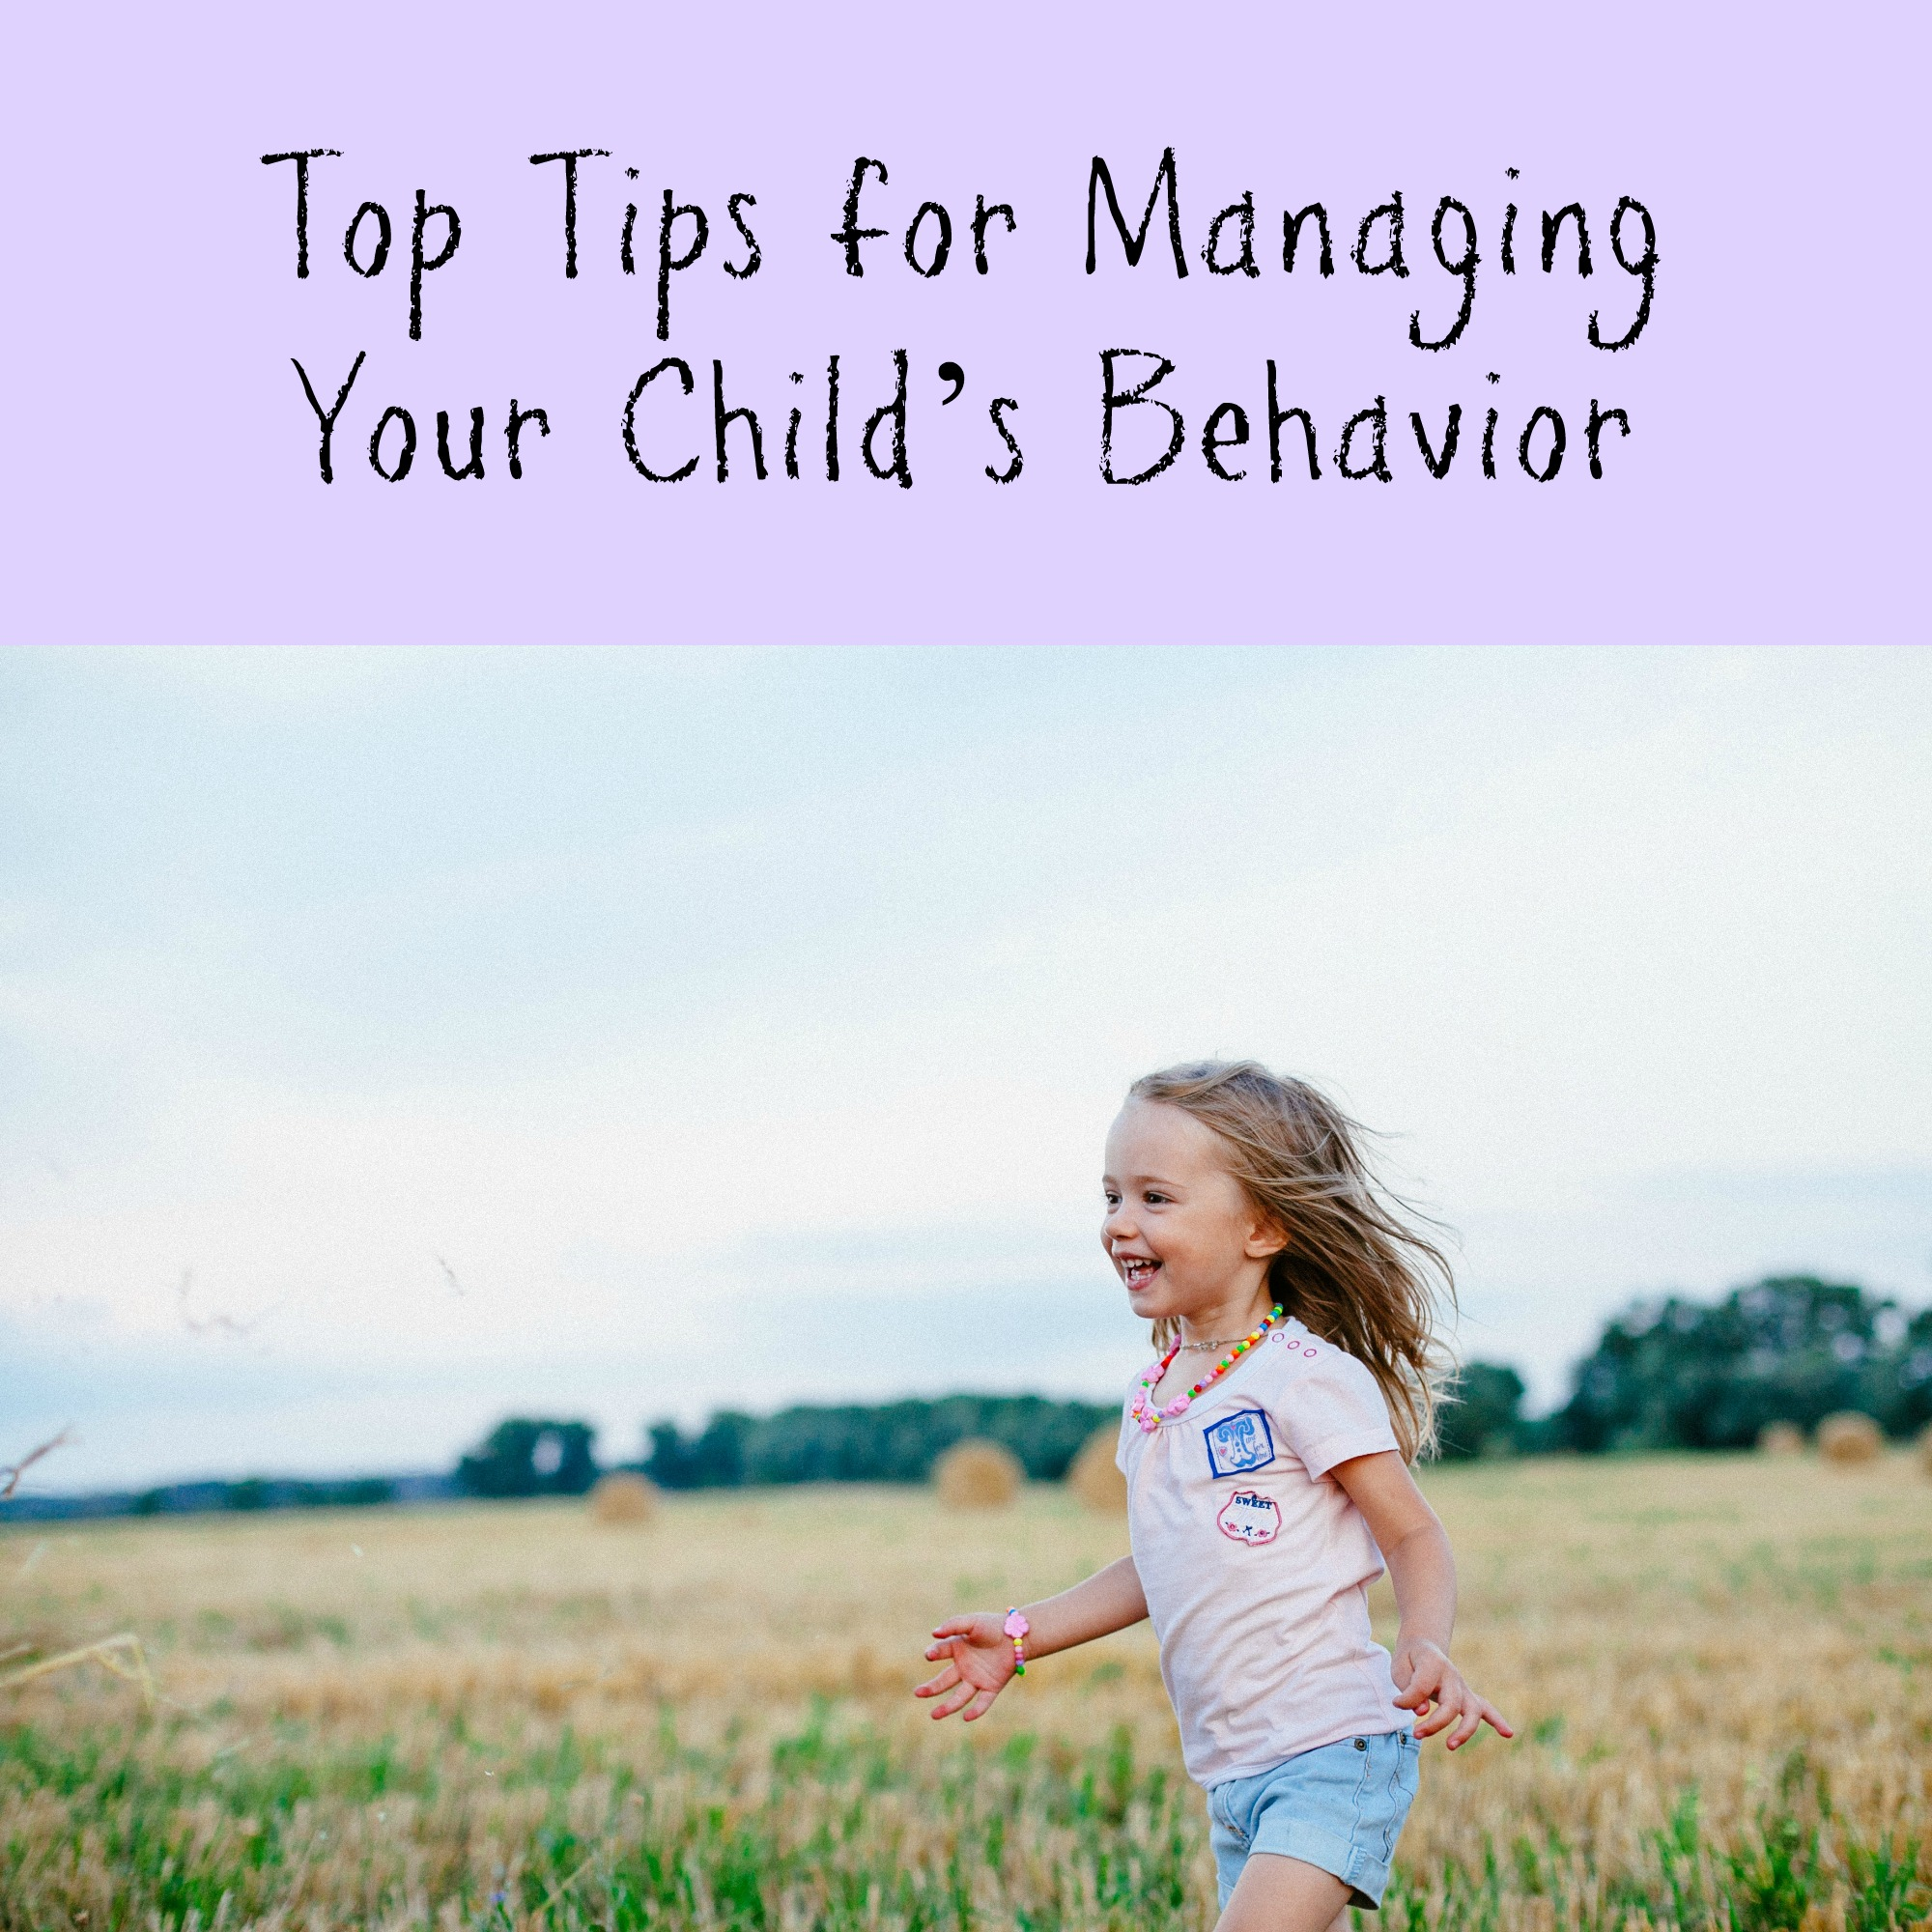 Top Tips for Managing Your Child's Behaviour